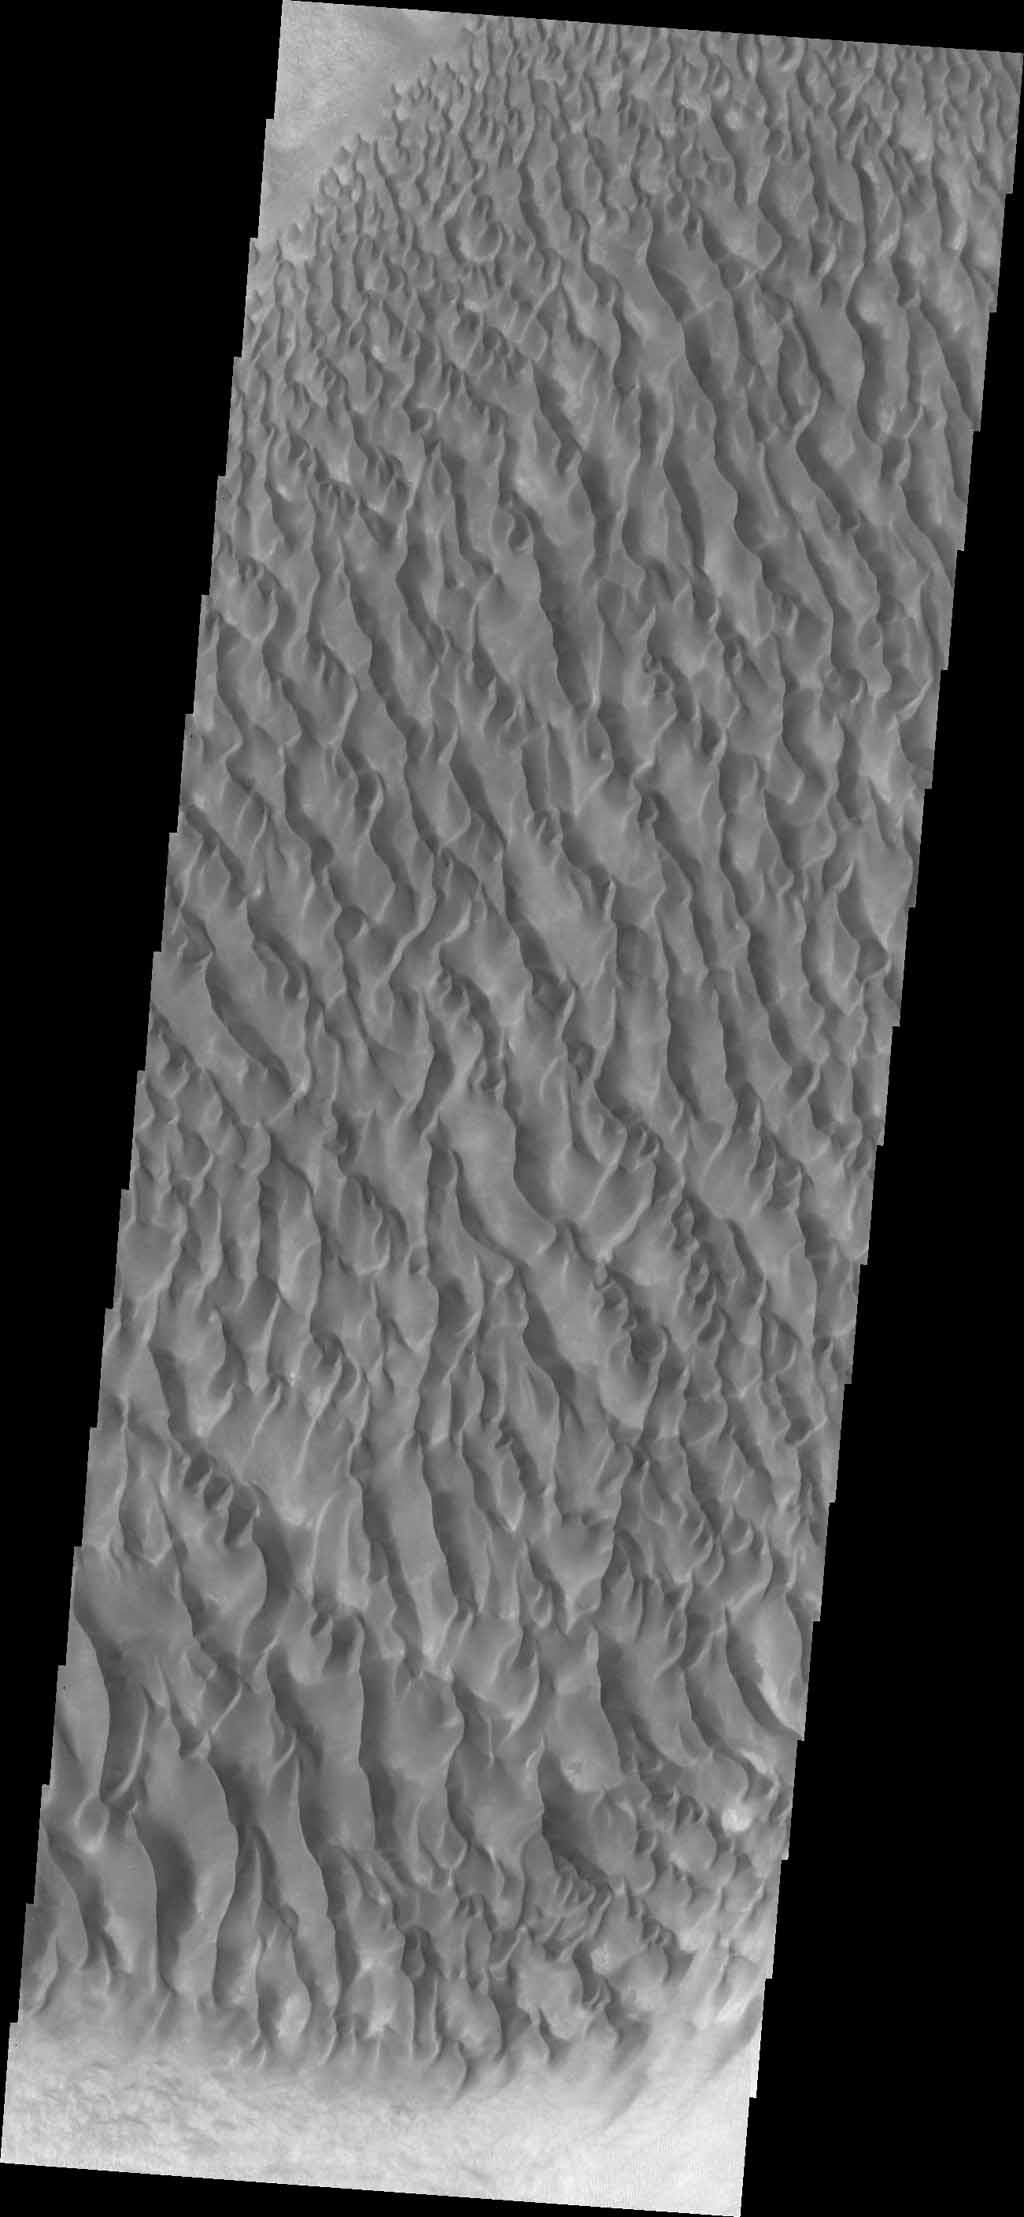 The floor of Proctor Crater is host to this sand sheet and its surface dune forms in this image captured by NASA's Mars Odyssey.